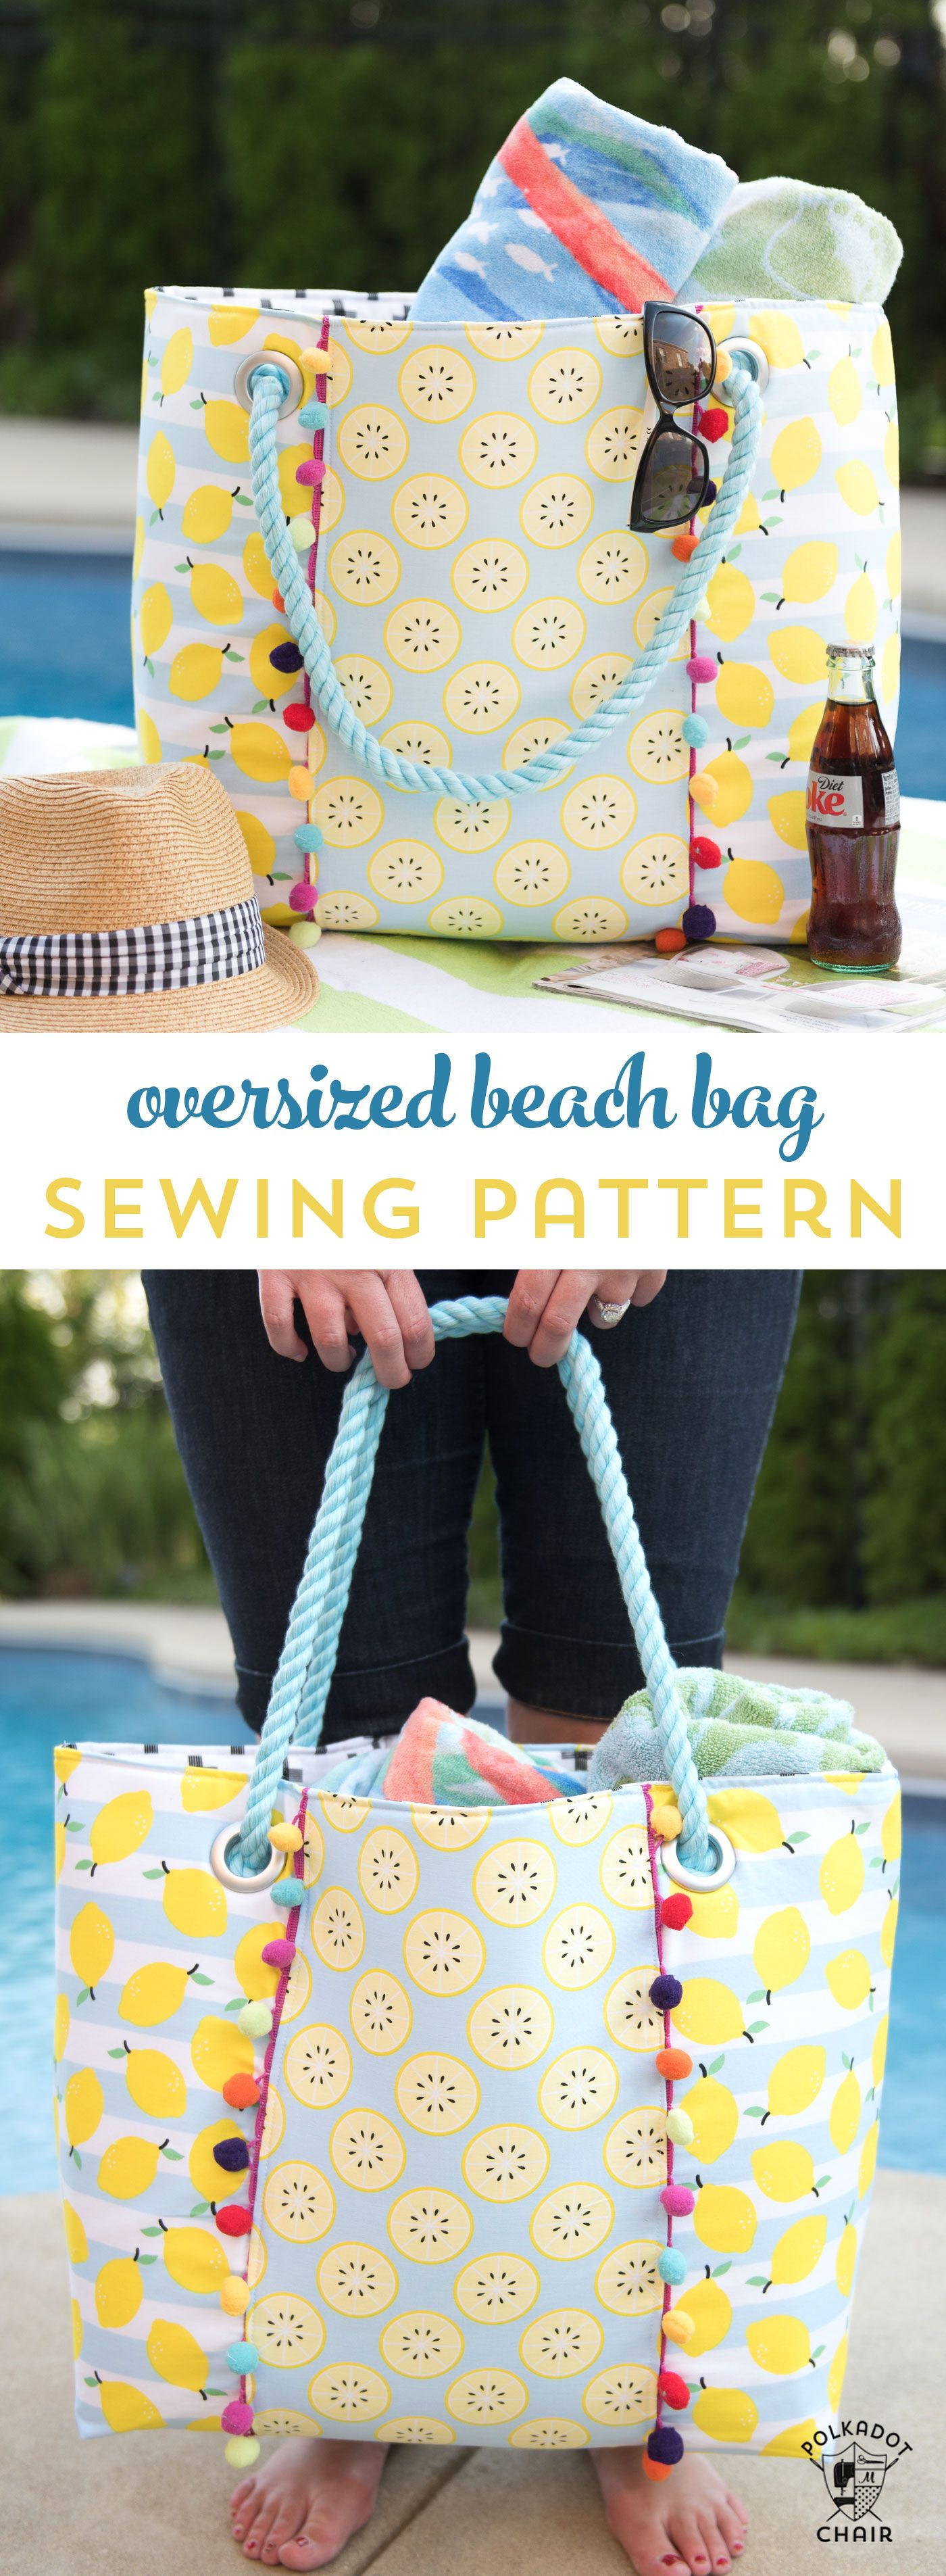 Oversized beach bag sewing pattern page 2 of 2 bag sewing learn how to sew a cute oversized pool bag with this oversized beach bag sewing pattern jeuxipadfo Gallery